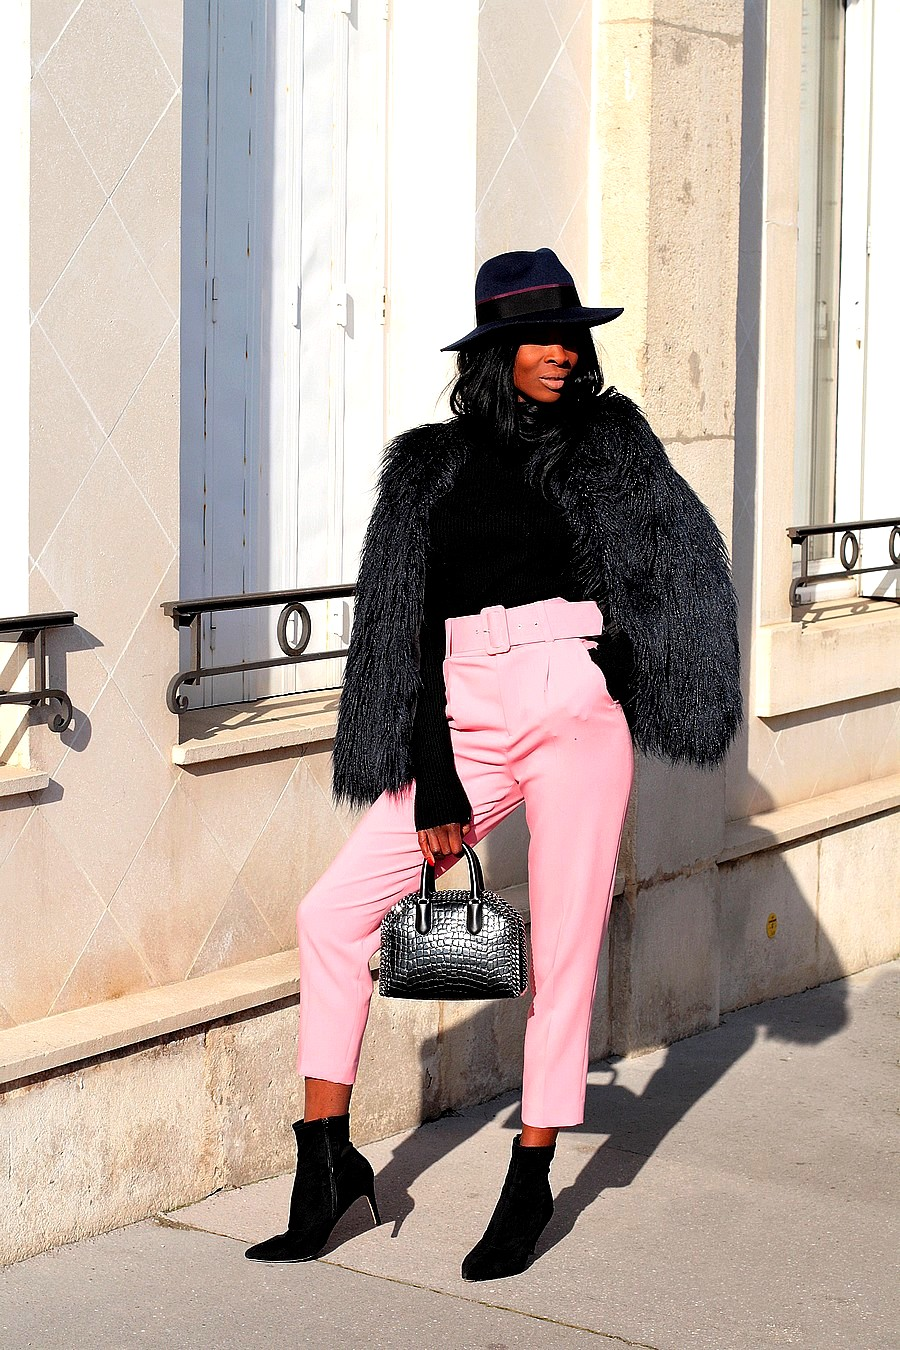 manteau-fourrure-chapeau-fedora-pantalon-taille-haute-bottines-sac-stella-mccartney